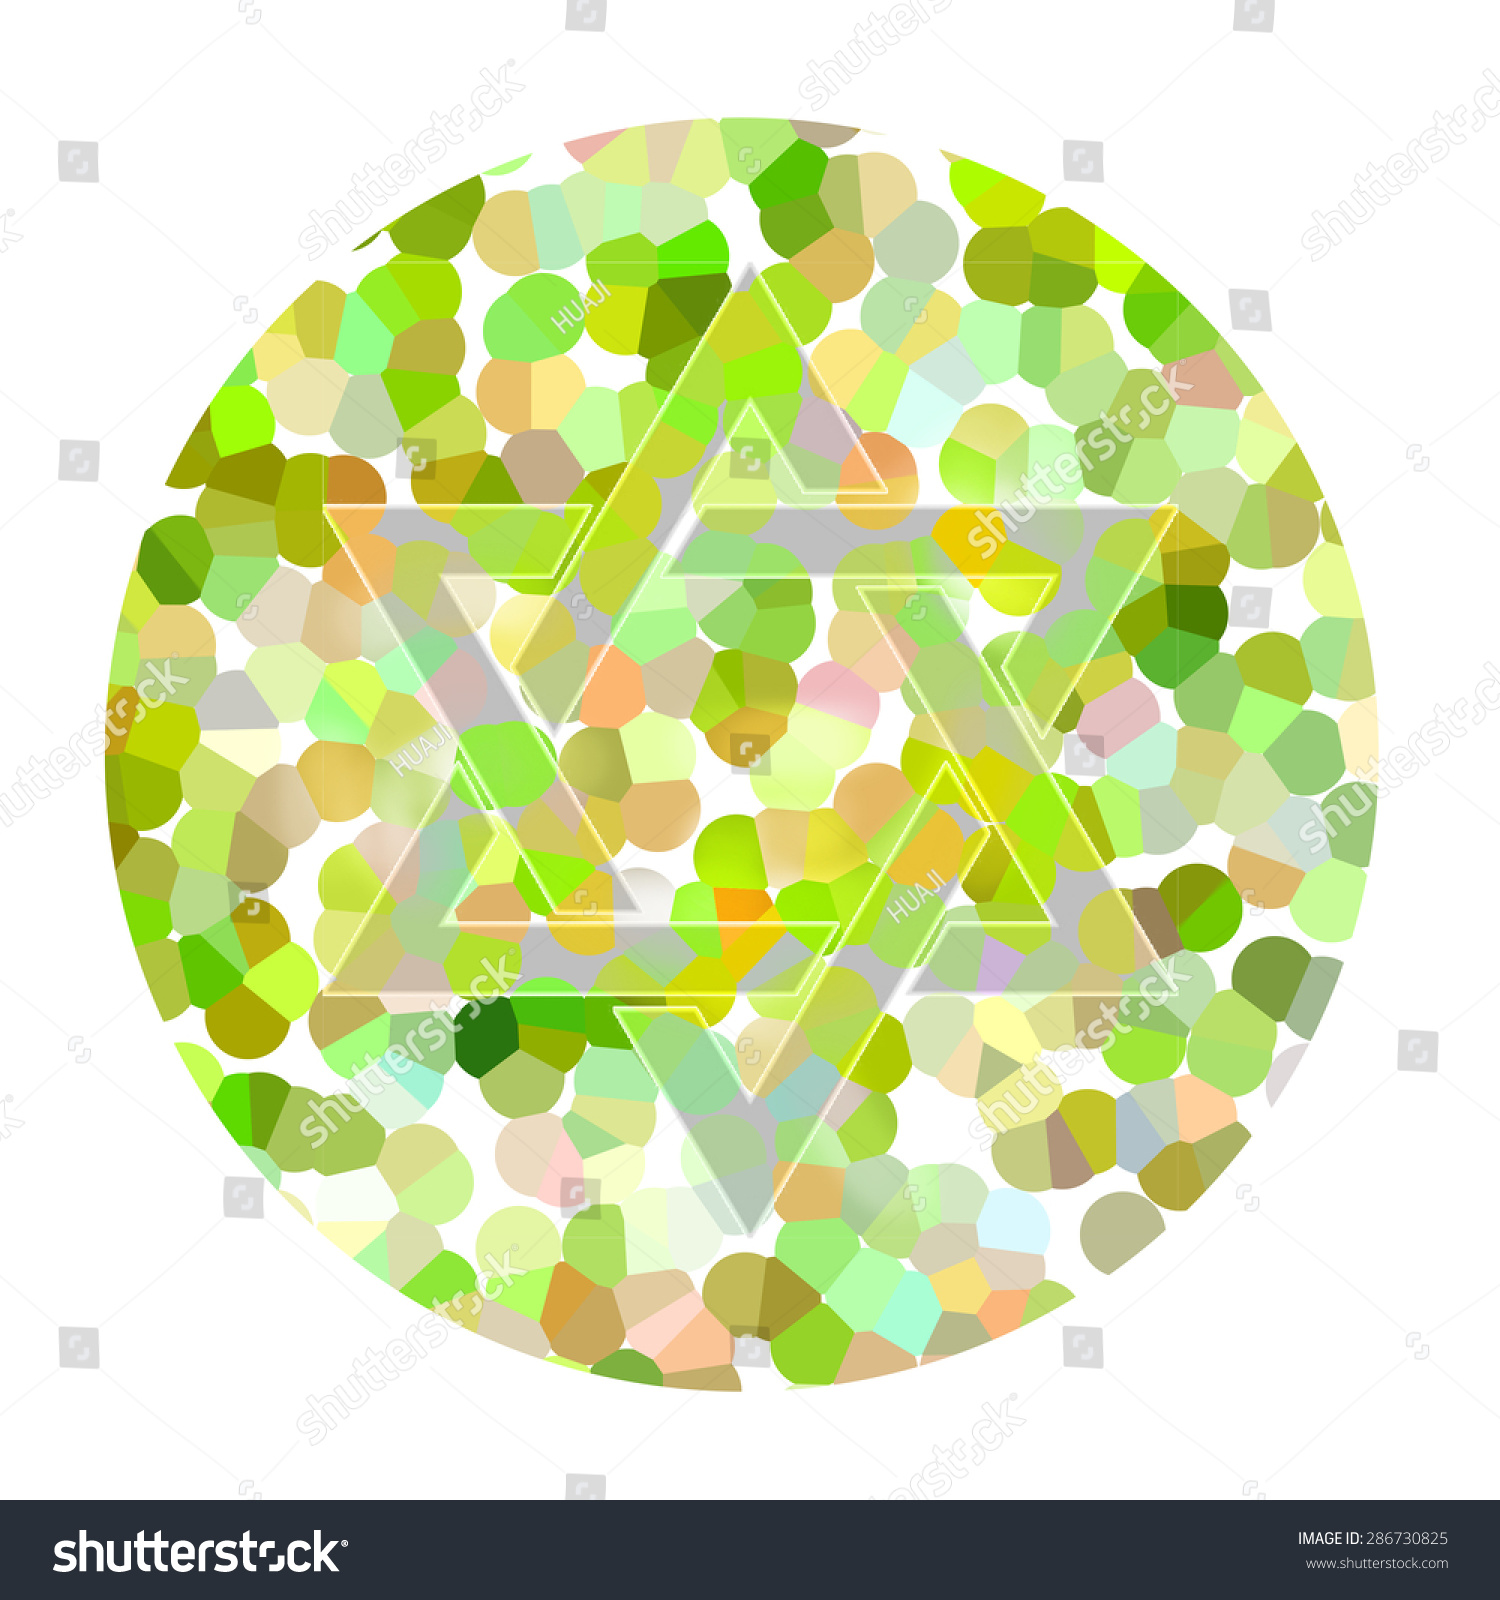 Modern Color Blindness Number Test Crest - Coloring Page ...